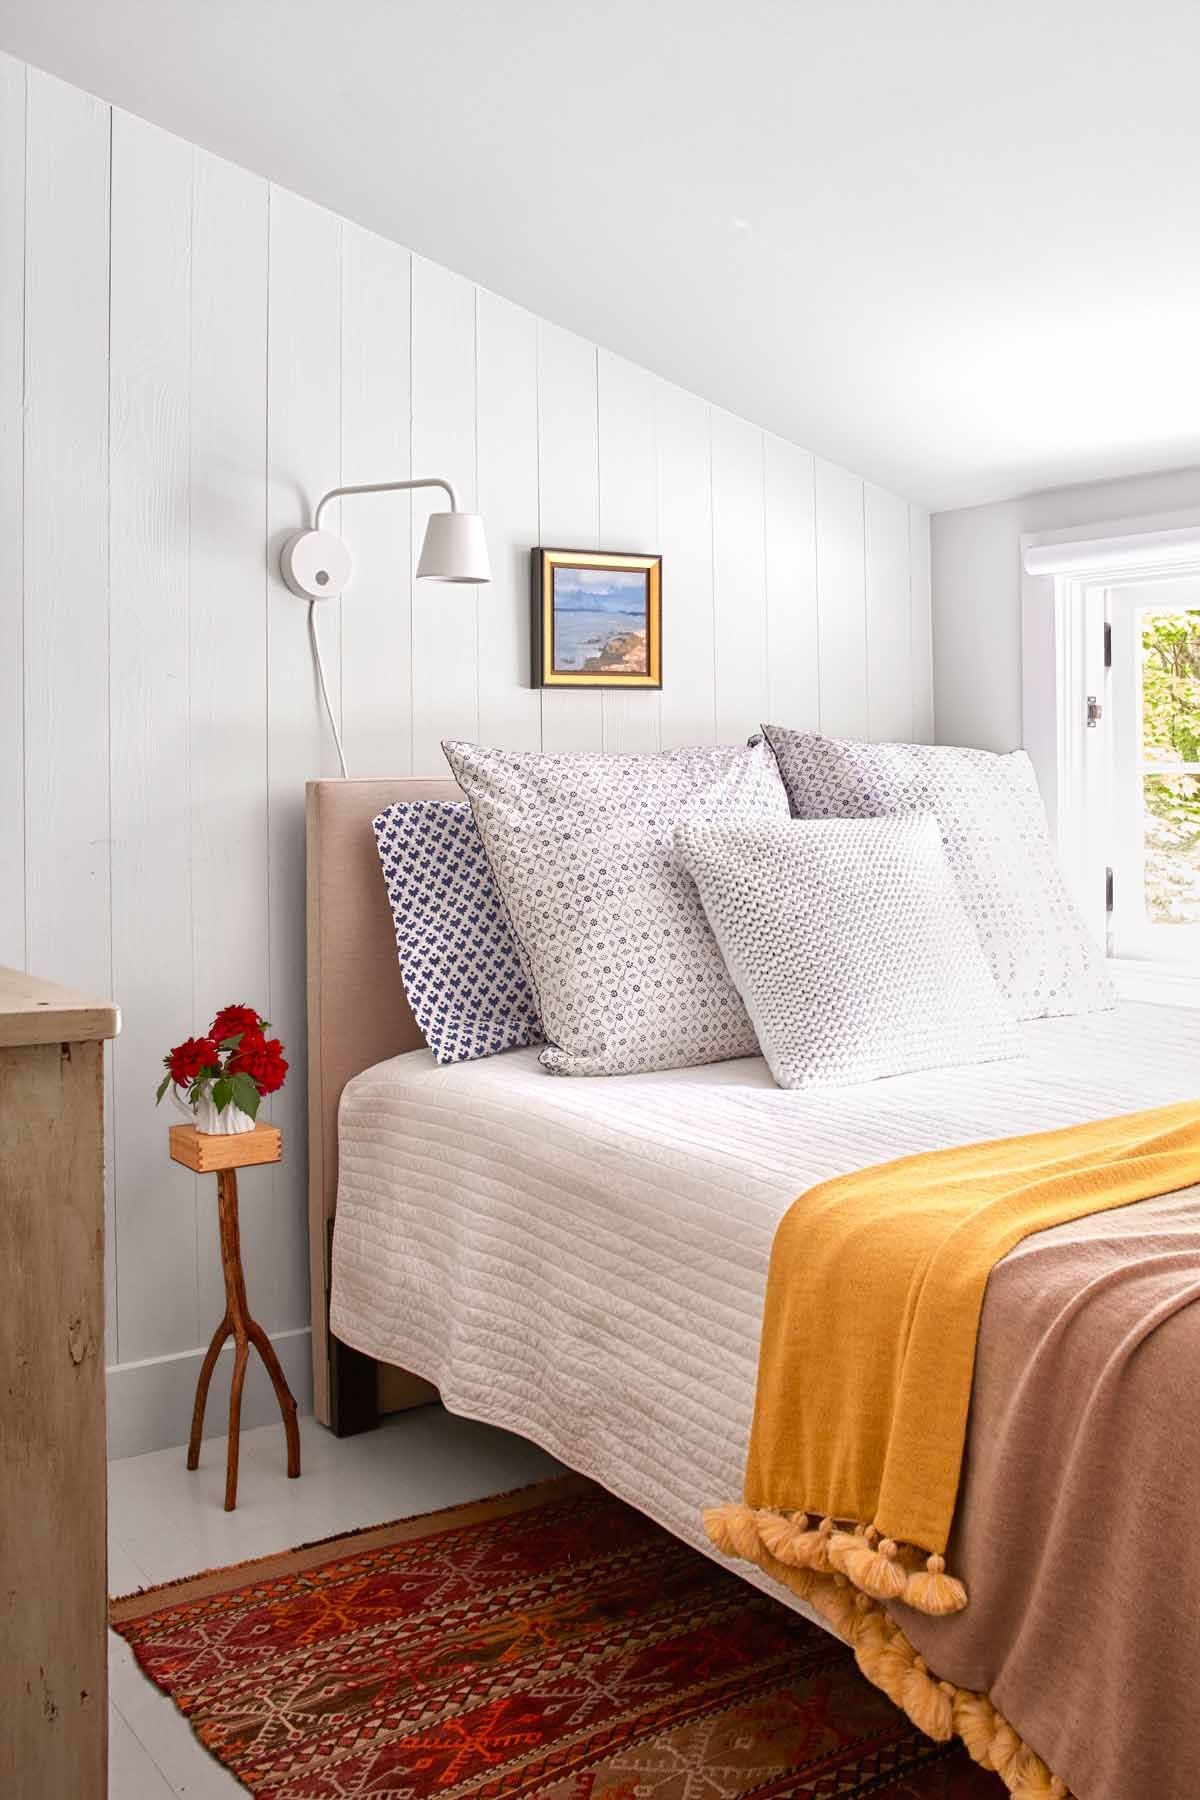 39 guest bedroom pictures decor ideas for guest rooms rh countryliving com  small guest bedroom decorating ideas and pictures